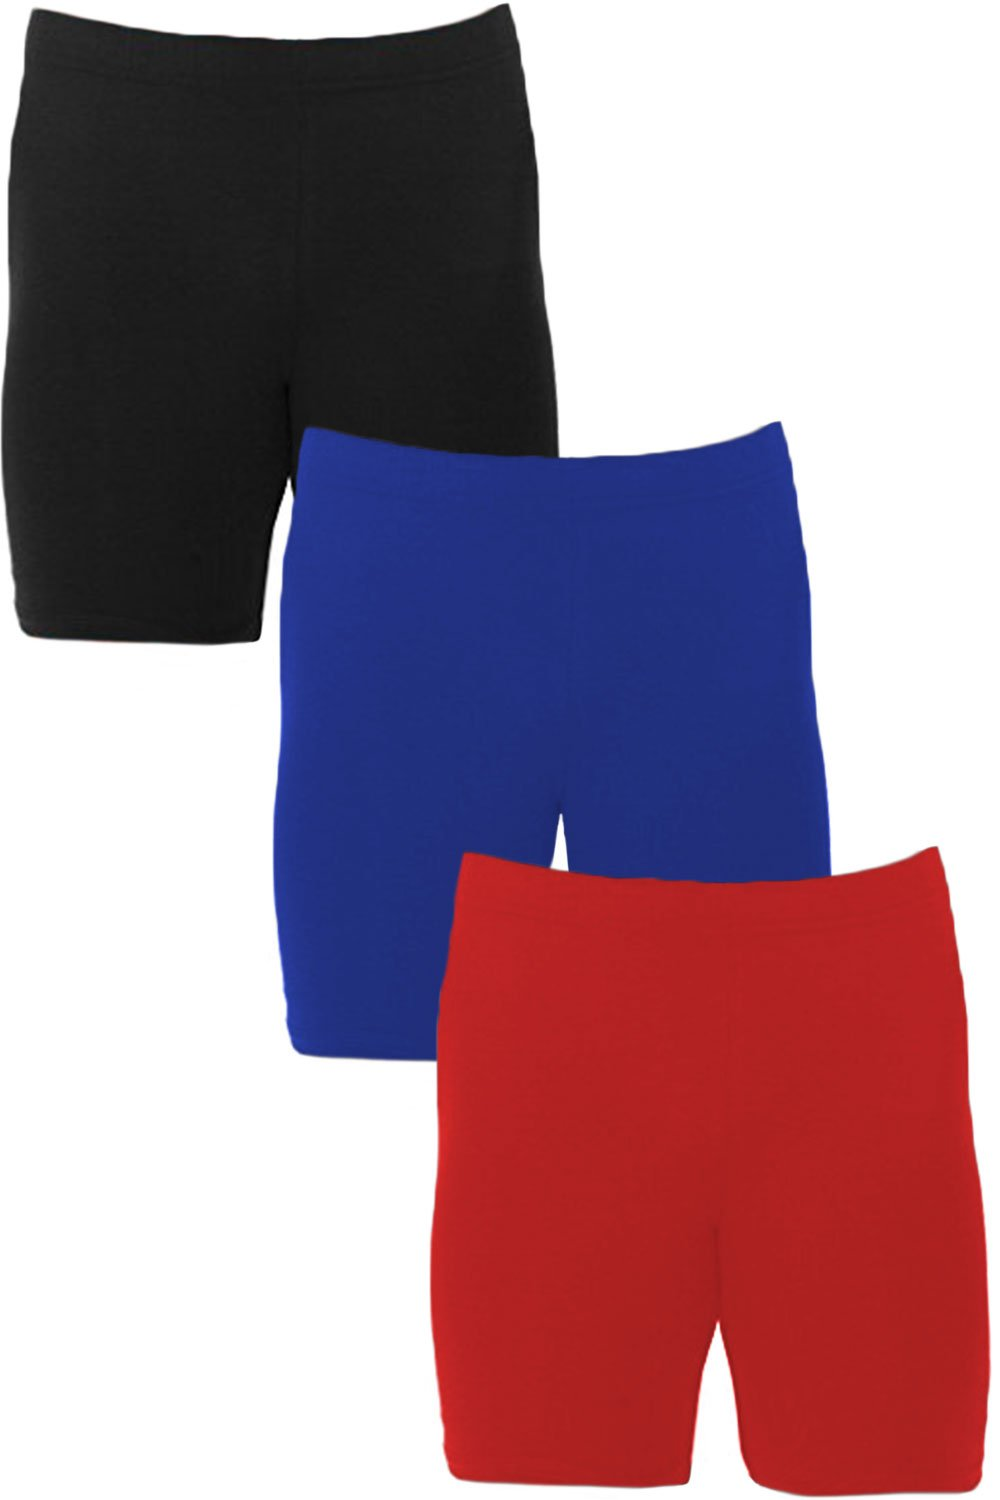 Men's Extreme Core-Champion True Double Dry Compression Short (Small, 3 Pack Black/Red/Royal)